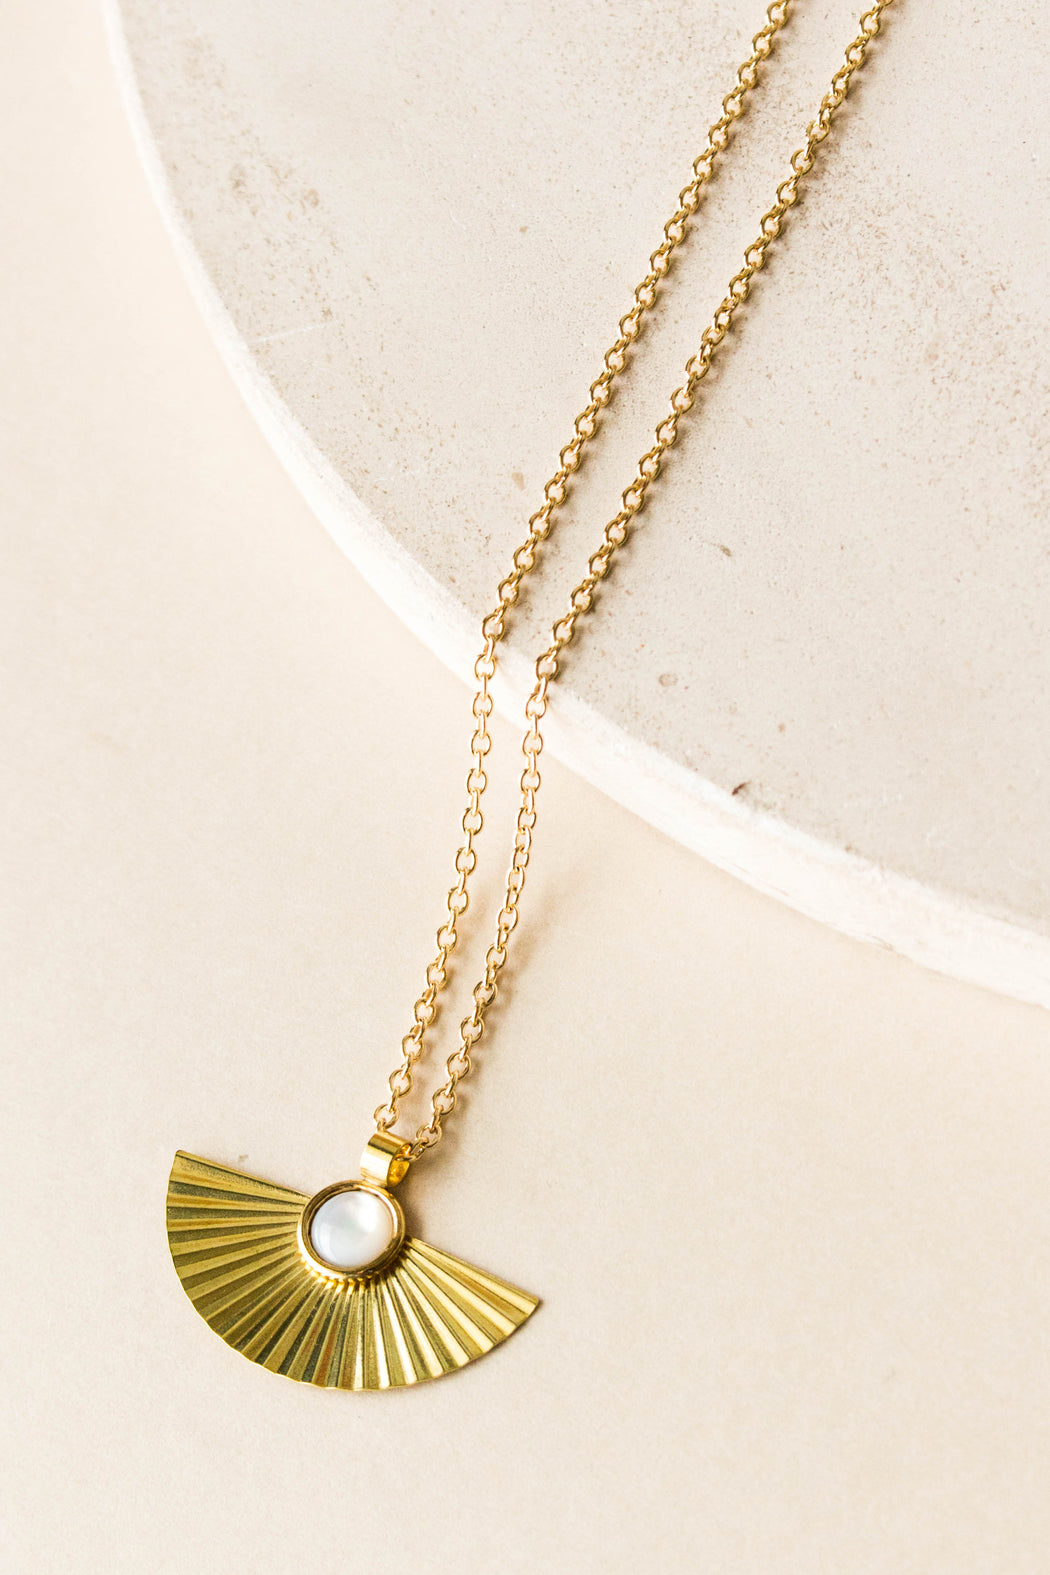 Michelle Starbuck - Pleat Necklace